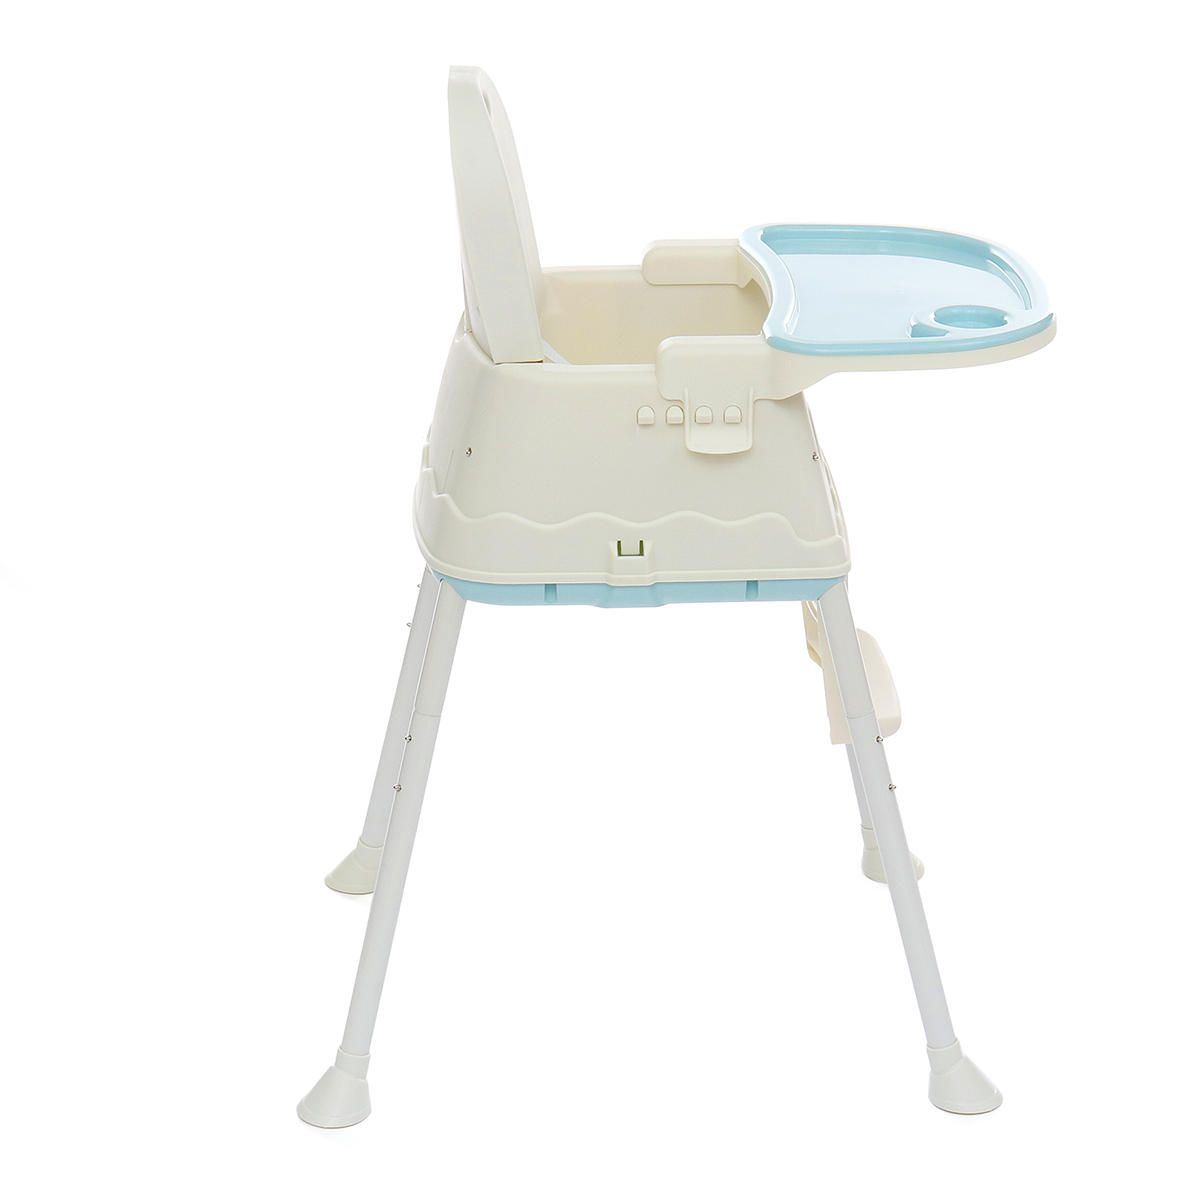 ALX US$71.38 Folding Baby High Chair Recline Highchair Height Adjustable Feeding Seat Wheels